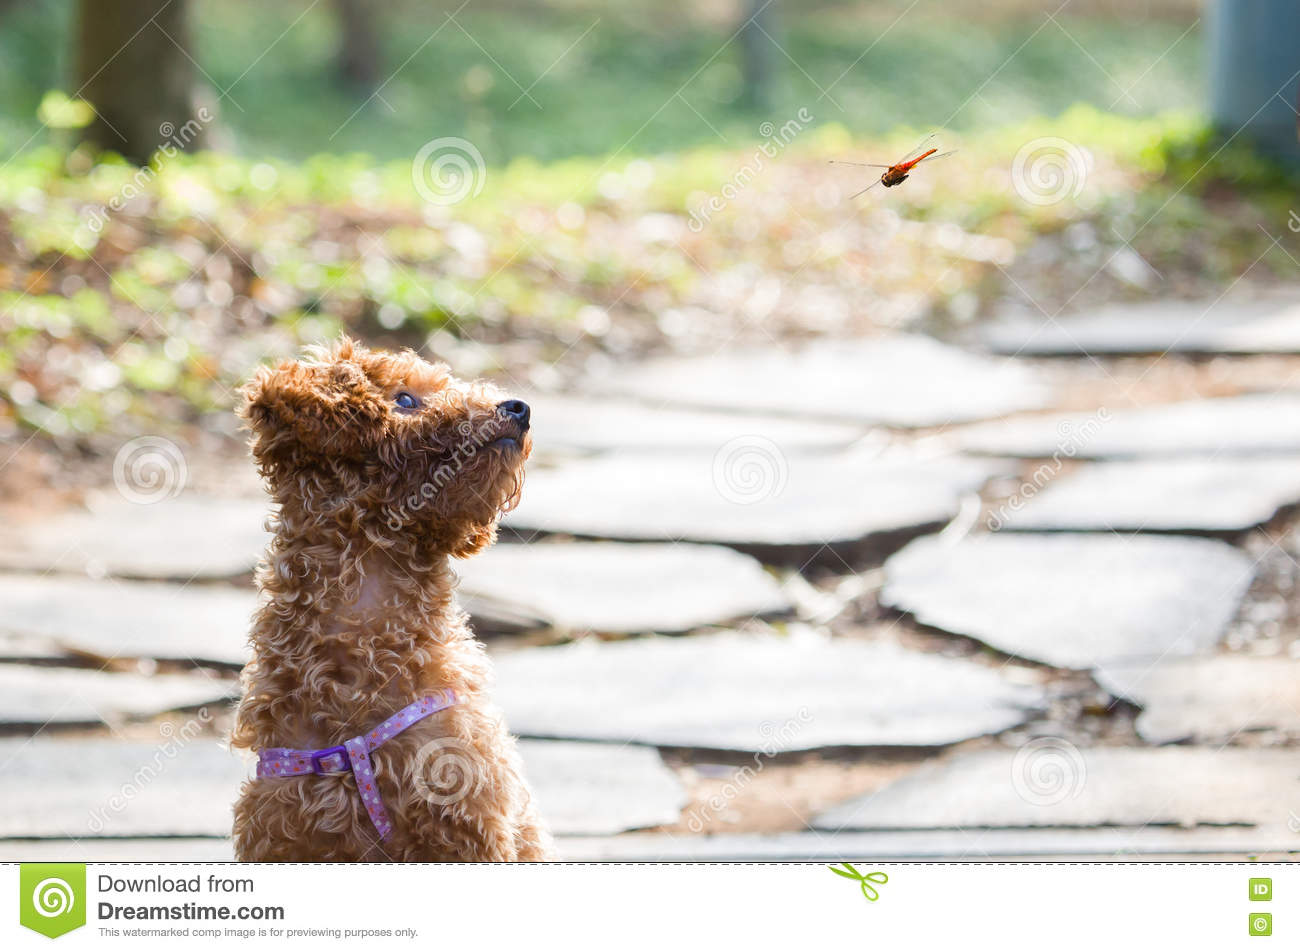 Teddy Dog Watching A Flying Dragonfly Stock Photo